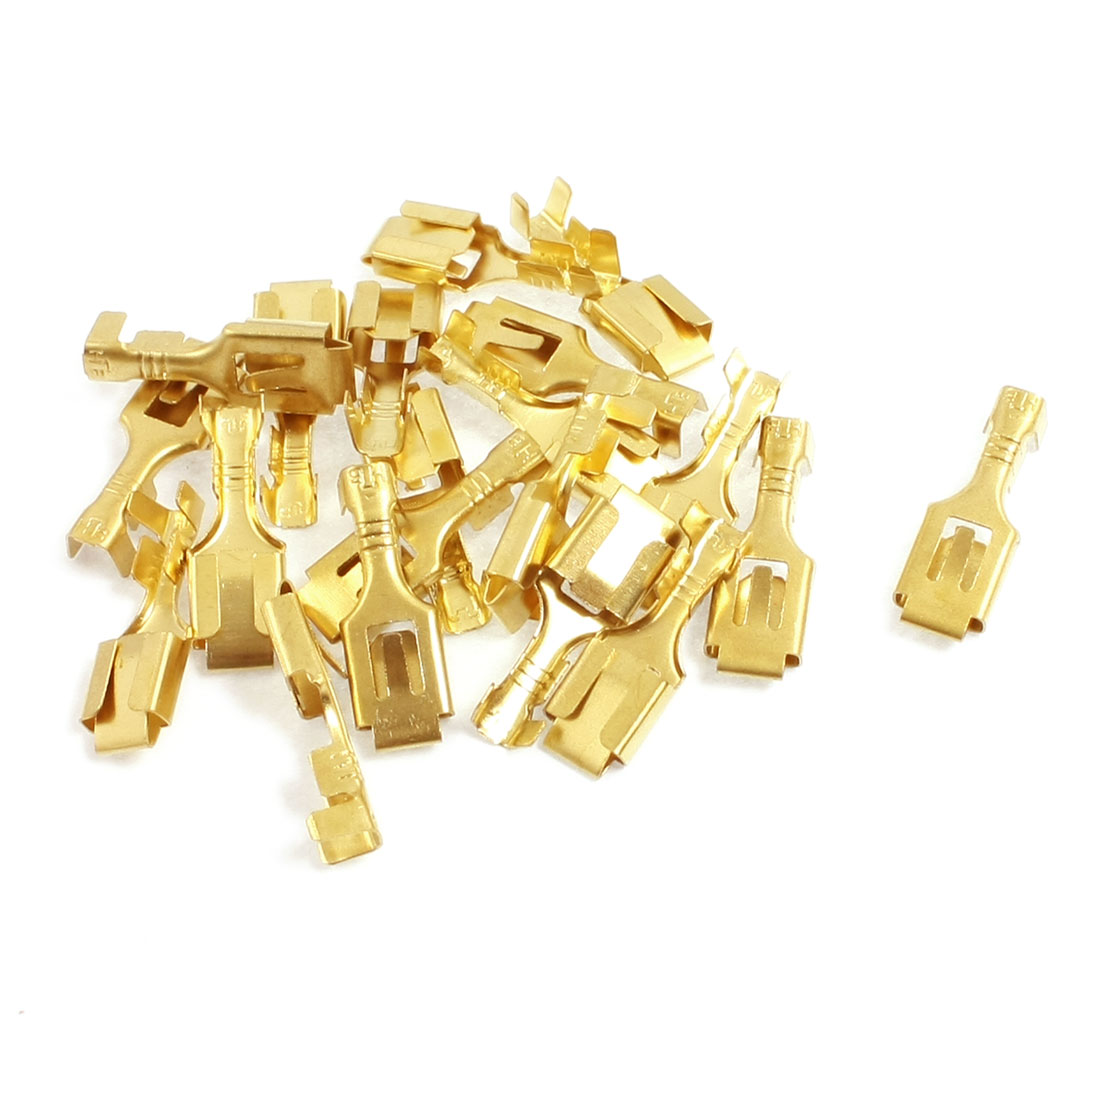 20 Pcs 6.3mm Brass Crimp Terminal Cable Female Spade Connector